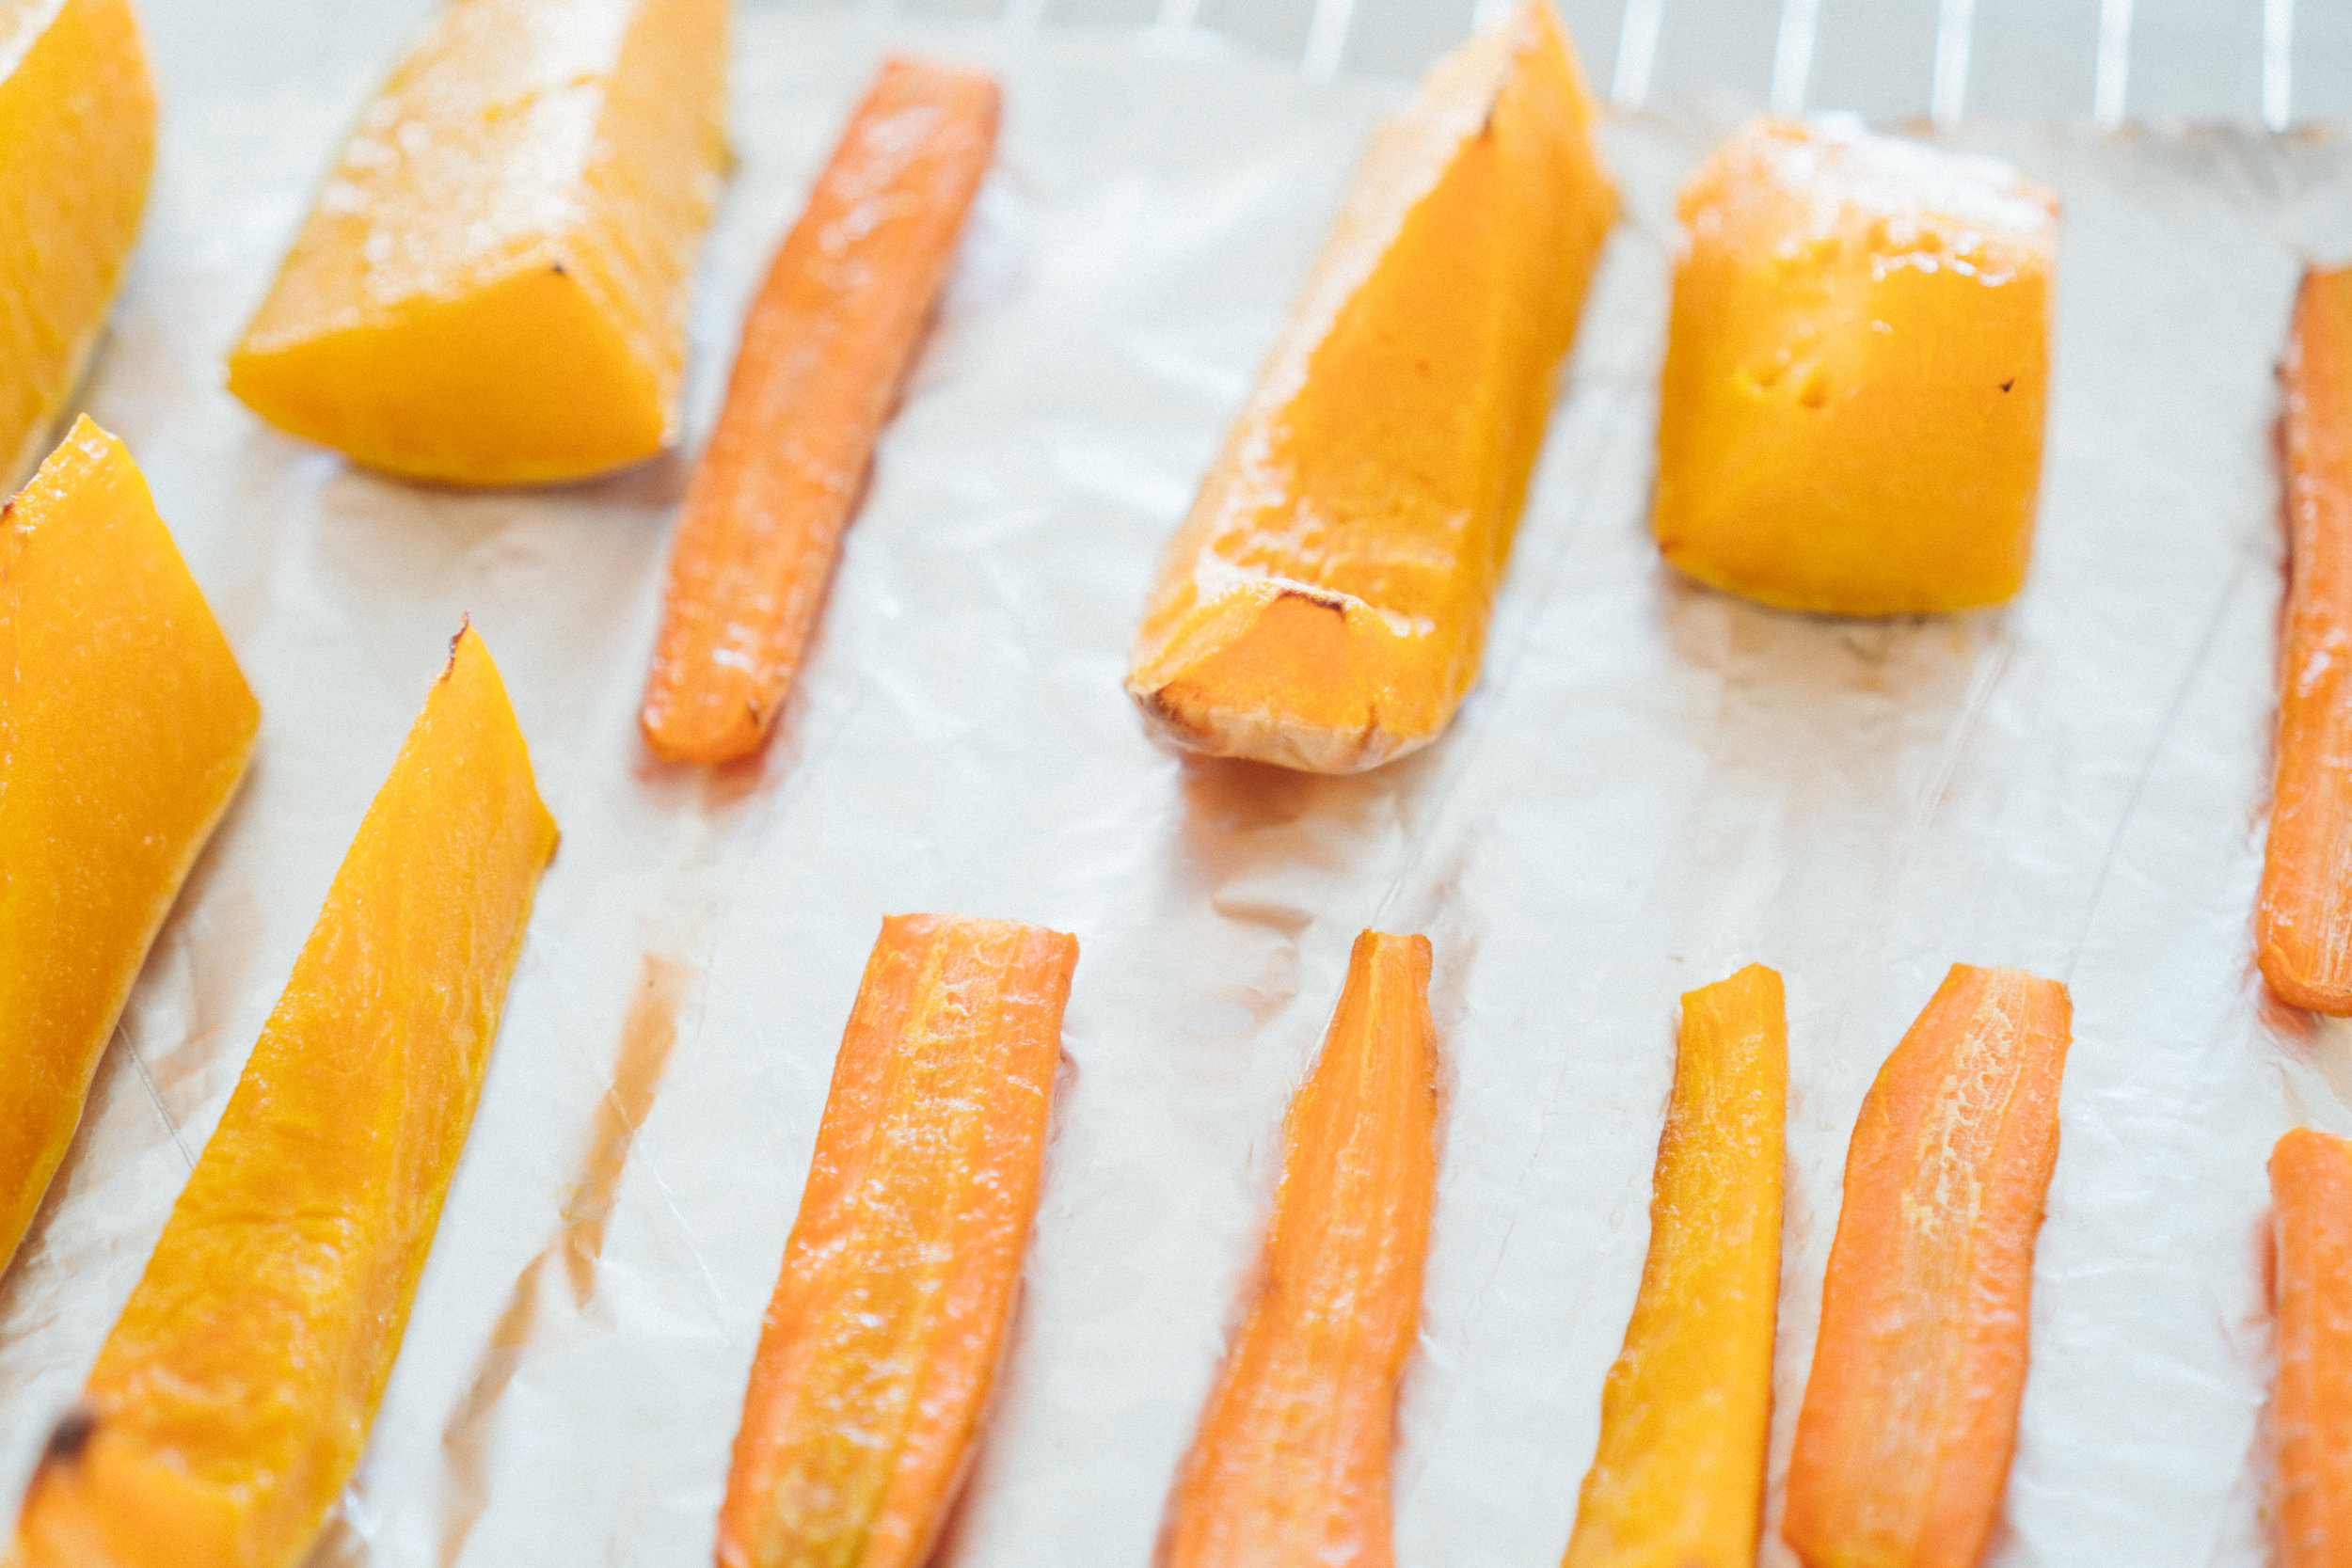 Butternut squash &carrots - oven roasted and ready to be simmered into a creamy fragrant soup.